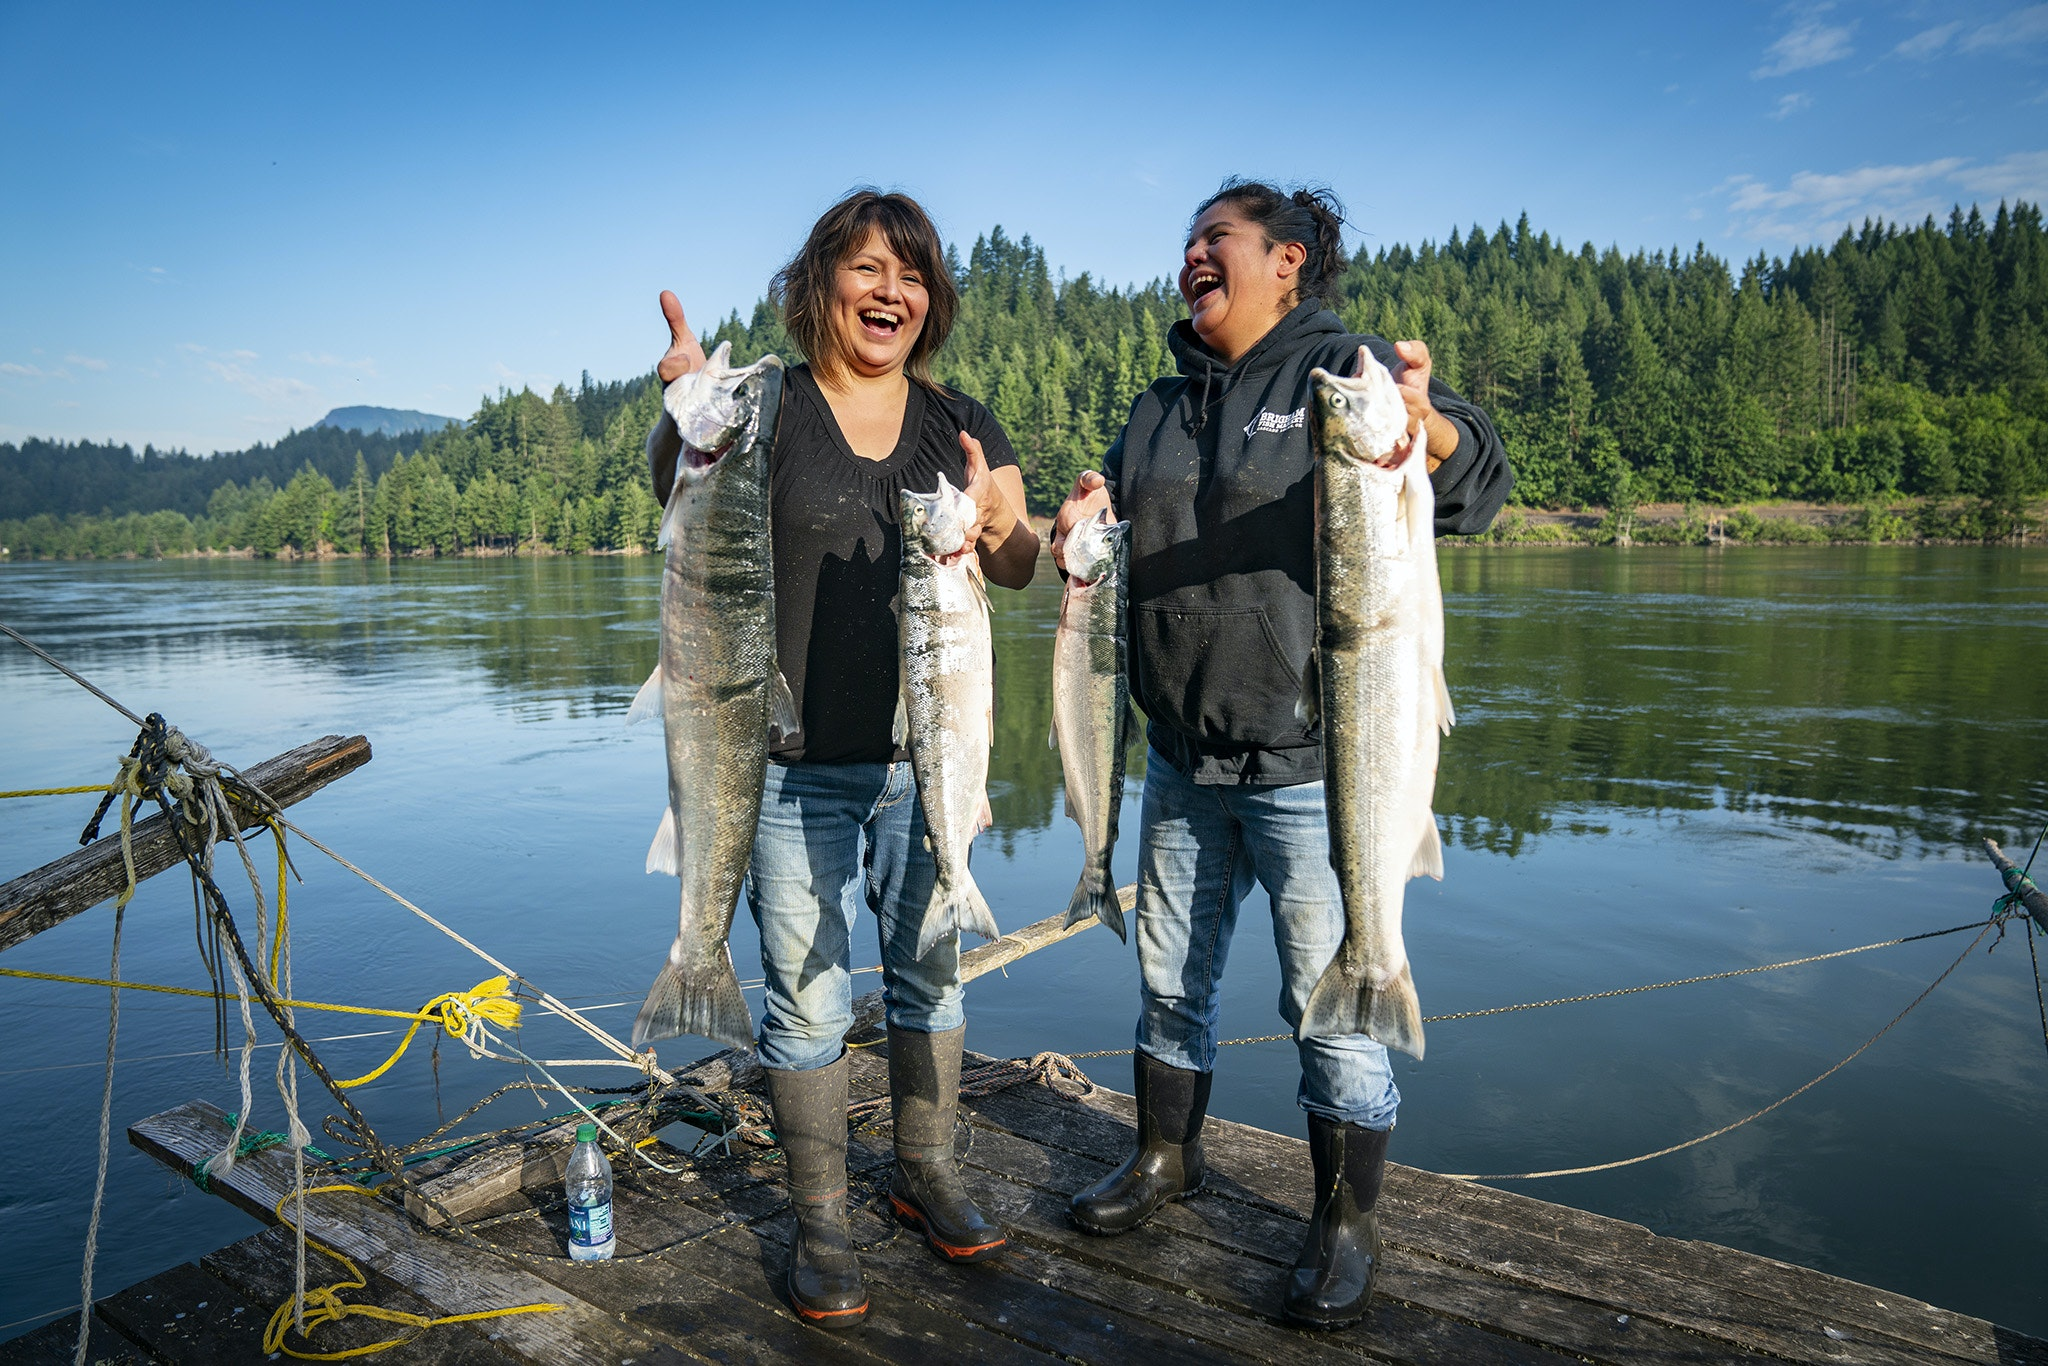 Every morning, sisters Kim and Terrie Brigham fish for the food they serve at their restaurant, Brigham Fish Market.